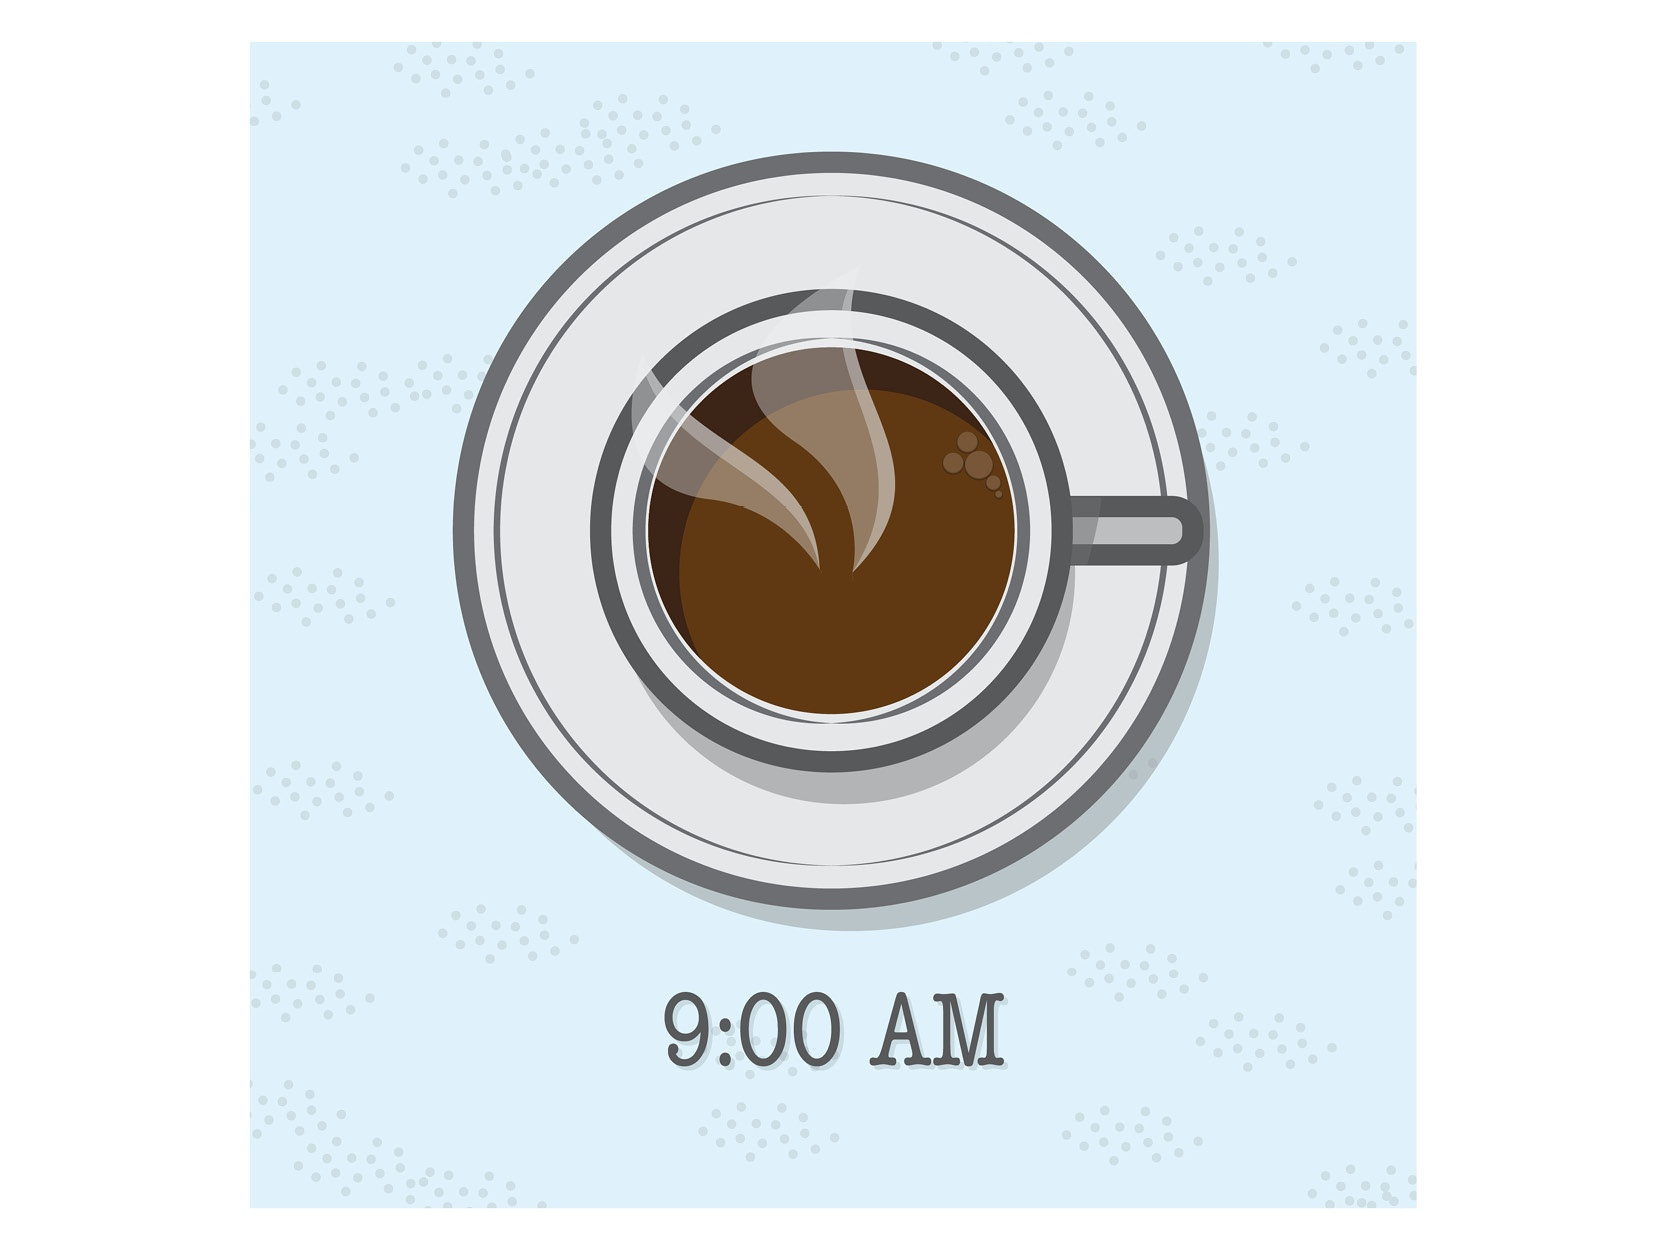 Dribbble shot coffee